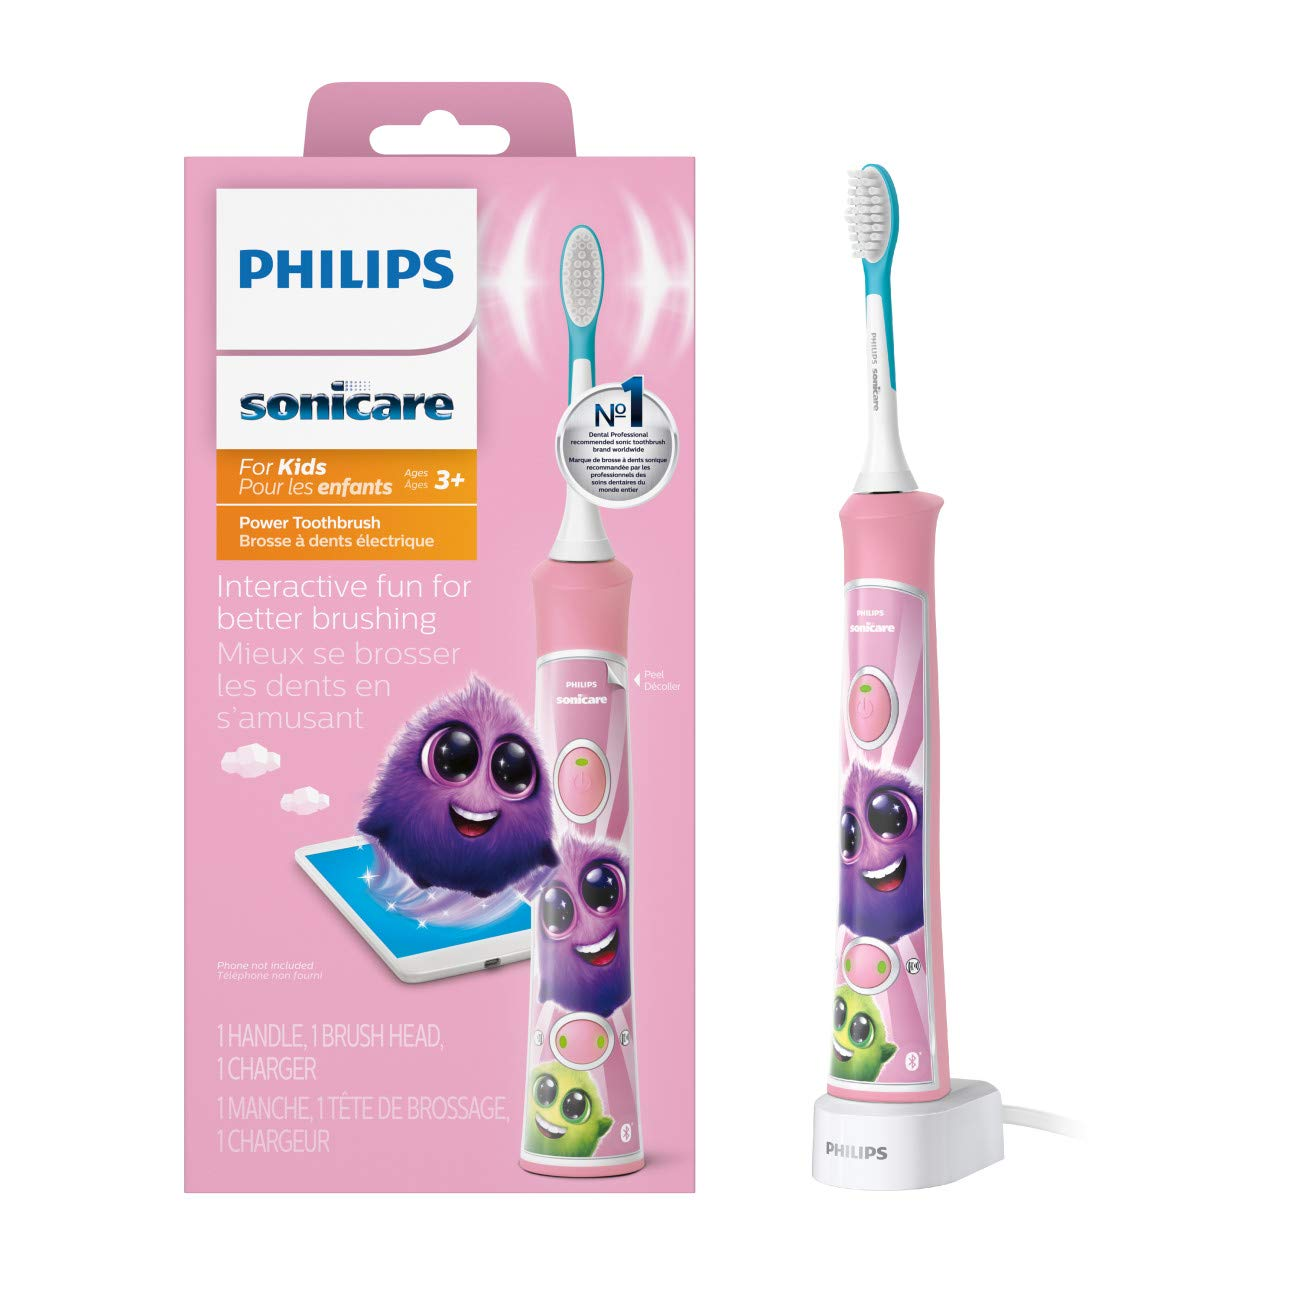 Philips Sonicare for Kids Rechargeable Electric Toothbrush, Pink HX6351/41 by Philips Sonicare